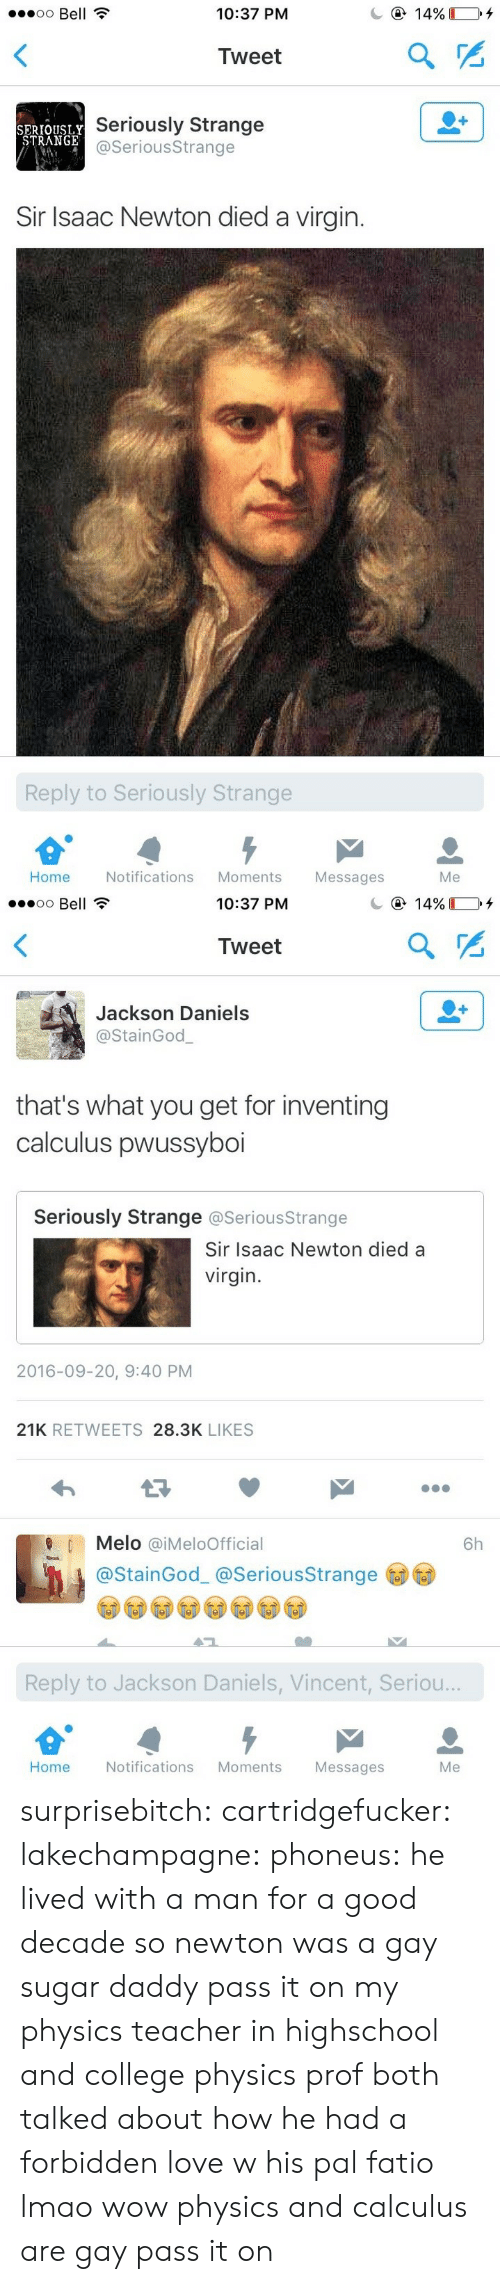 Isaac Newton: oo Bell  10:37 PM  Tweet  SERTOUSLY  STRANGE  Seriously Strange  @SeriousStrange  Sir Isaac Newton died a virgin.  Reply to Seriously Strange  Home Notifications Moments Messages  Me   10:37 PM  Tweet  Jackson Daniels  @StainGod  that's what you get for inventing  calculus pwussyboi  Seriously Strange @SeriousStrange  Sir Isaac Newton died a  virgin  2016-09-20, 9:40 PM  21K RETWEETS 28.3K LIKES  Melo @iMeloOfficial  6h  @StainGod_ @SeriousStrange  Reply to Jackson Daniels, Vincent, Seriou..  Home  Notifications Moments  Messages  Me surprisebitch:  cartridgefucker: lakechampagne:  phoneus: he lived with a man for a good decade so newton was a gay sugar daddy pass it on  my physics teacher in highschool and college physics prof both talked about how he had a forbidden love w his pal fatio lmao  wow physics and calculus are gay pass it on